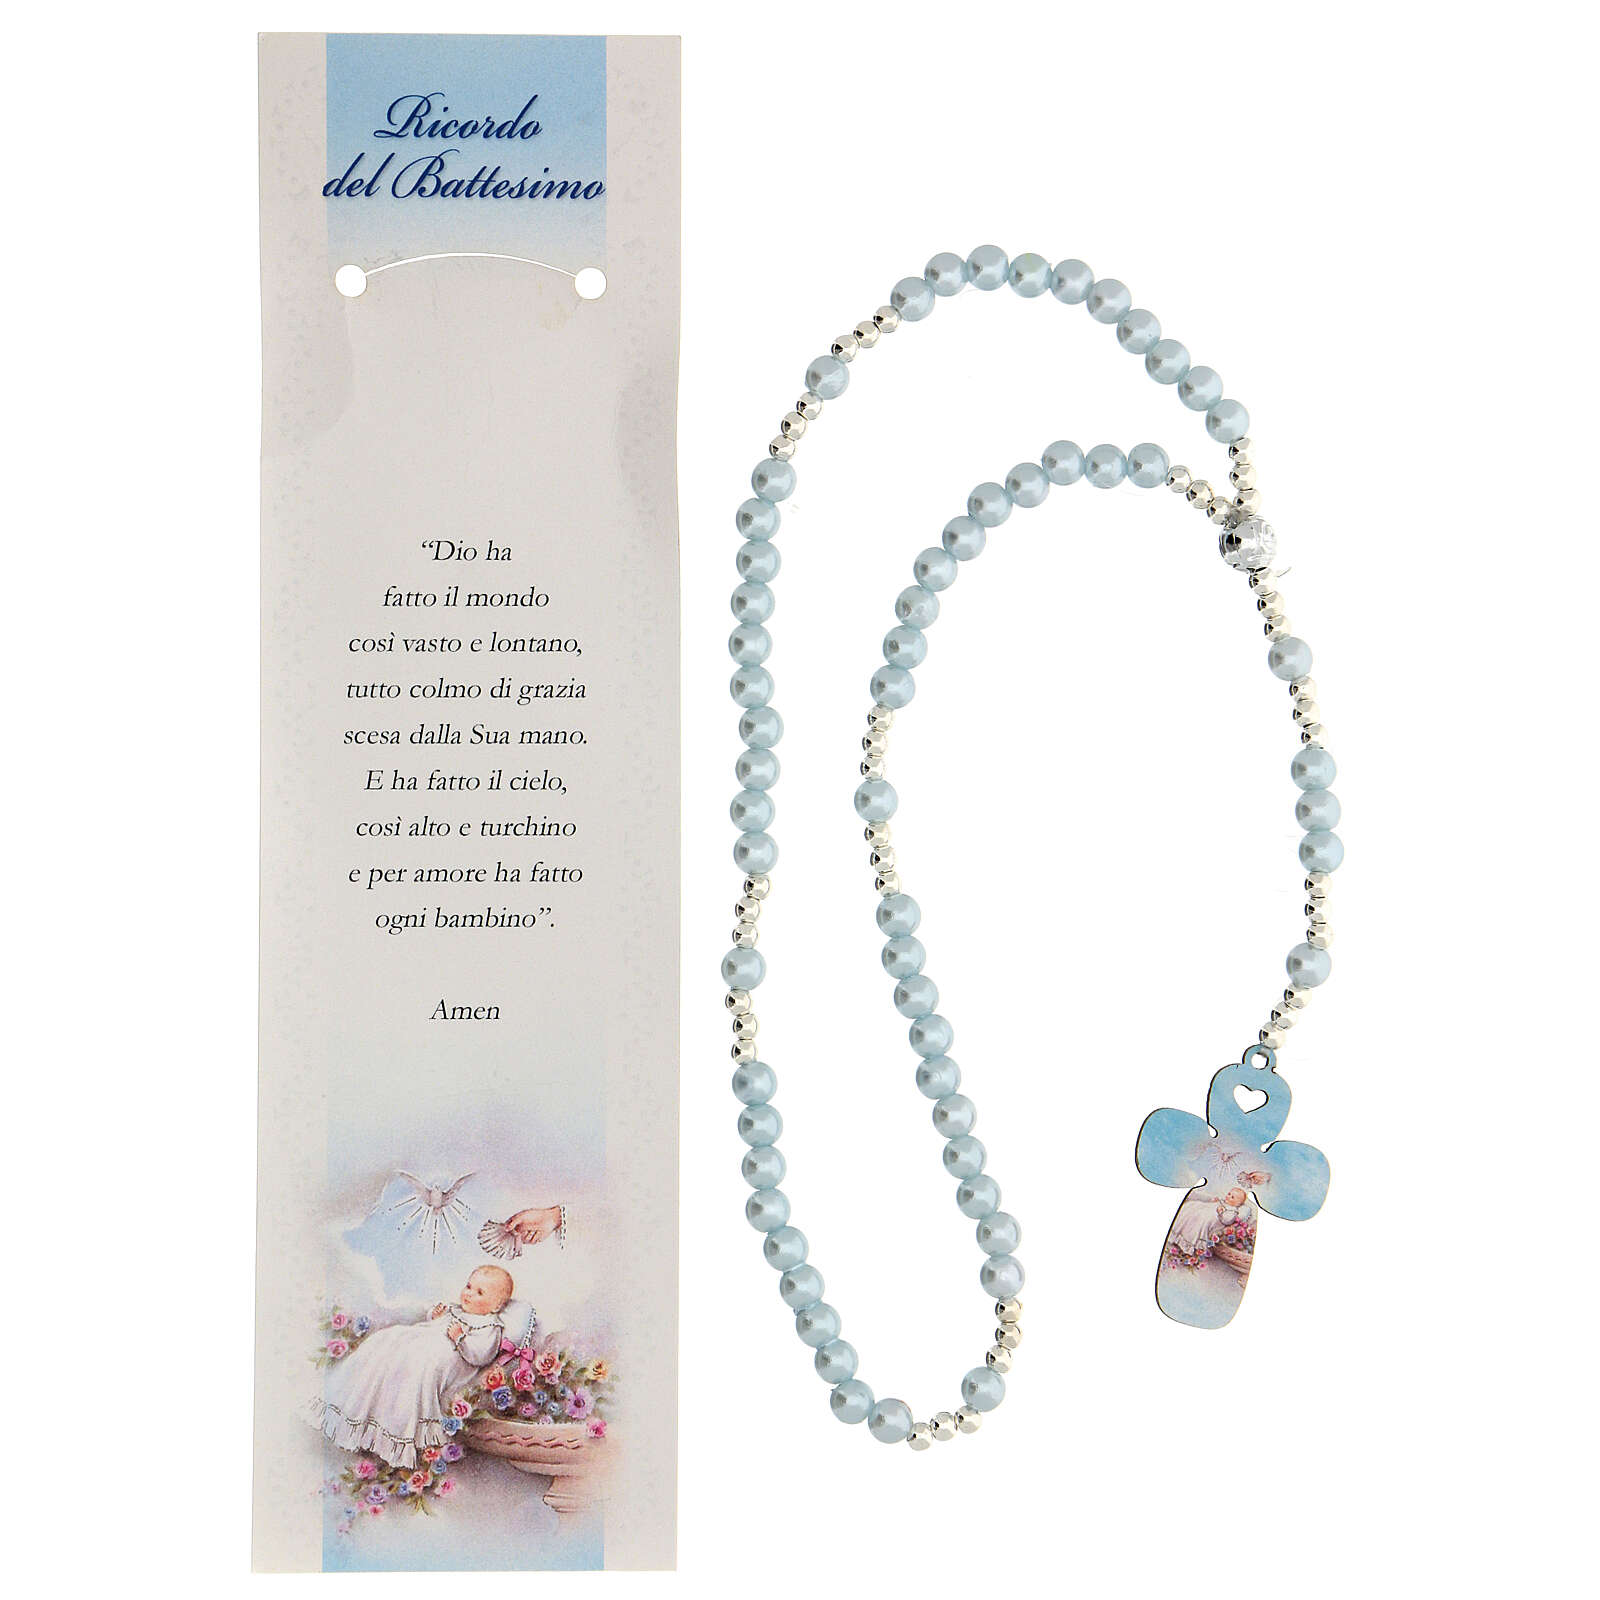 Blue pearl glass rosary with Italian prayer for Baptism 3